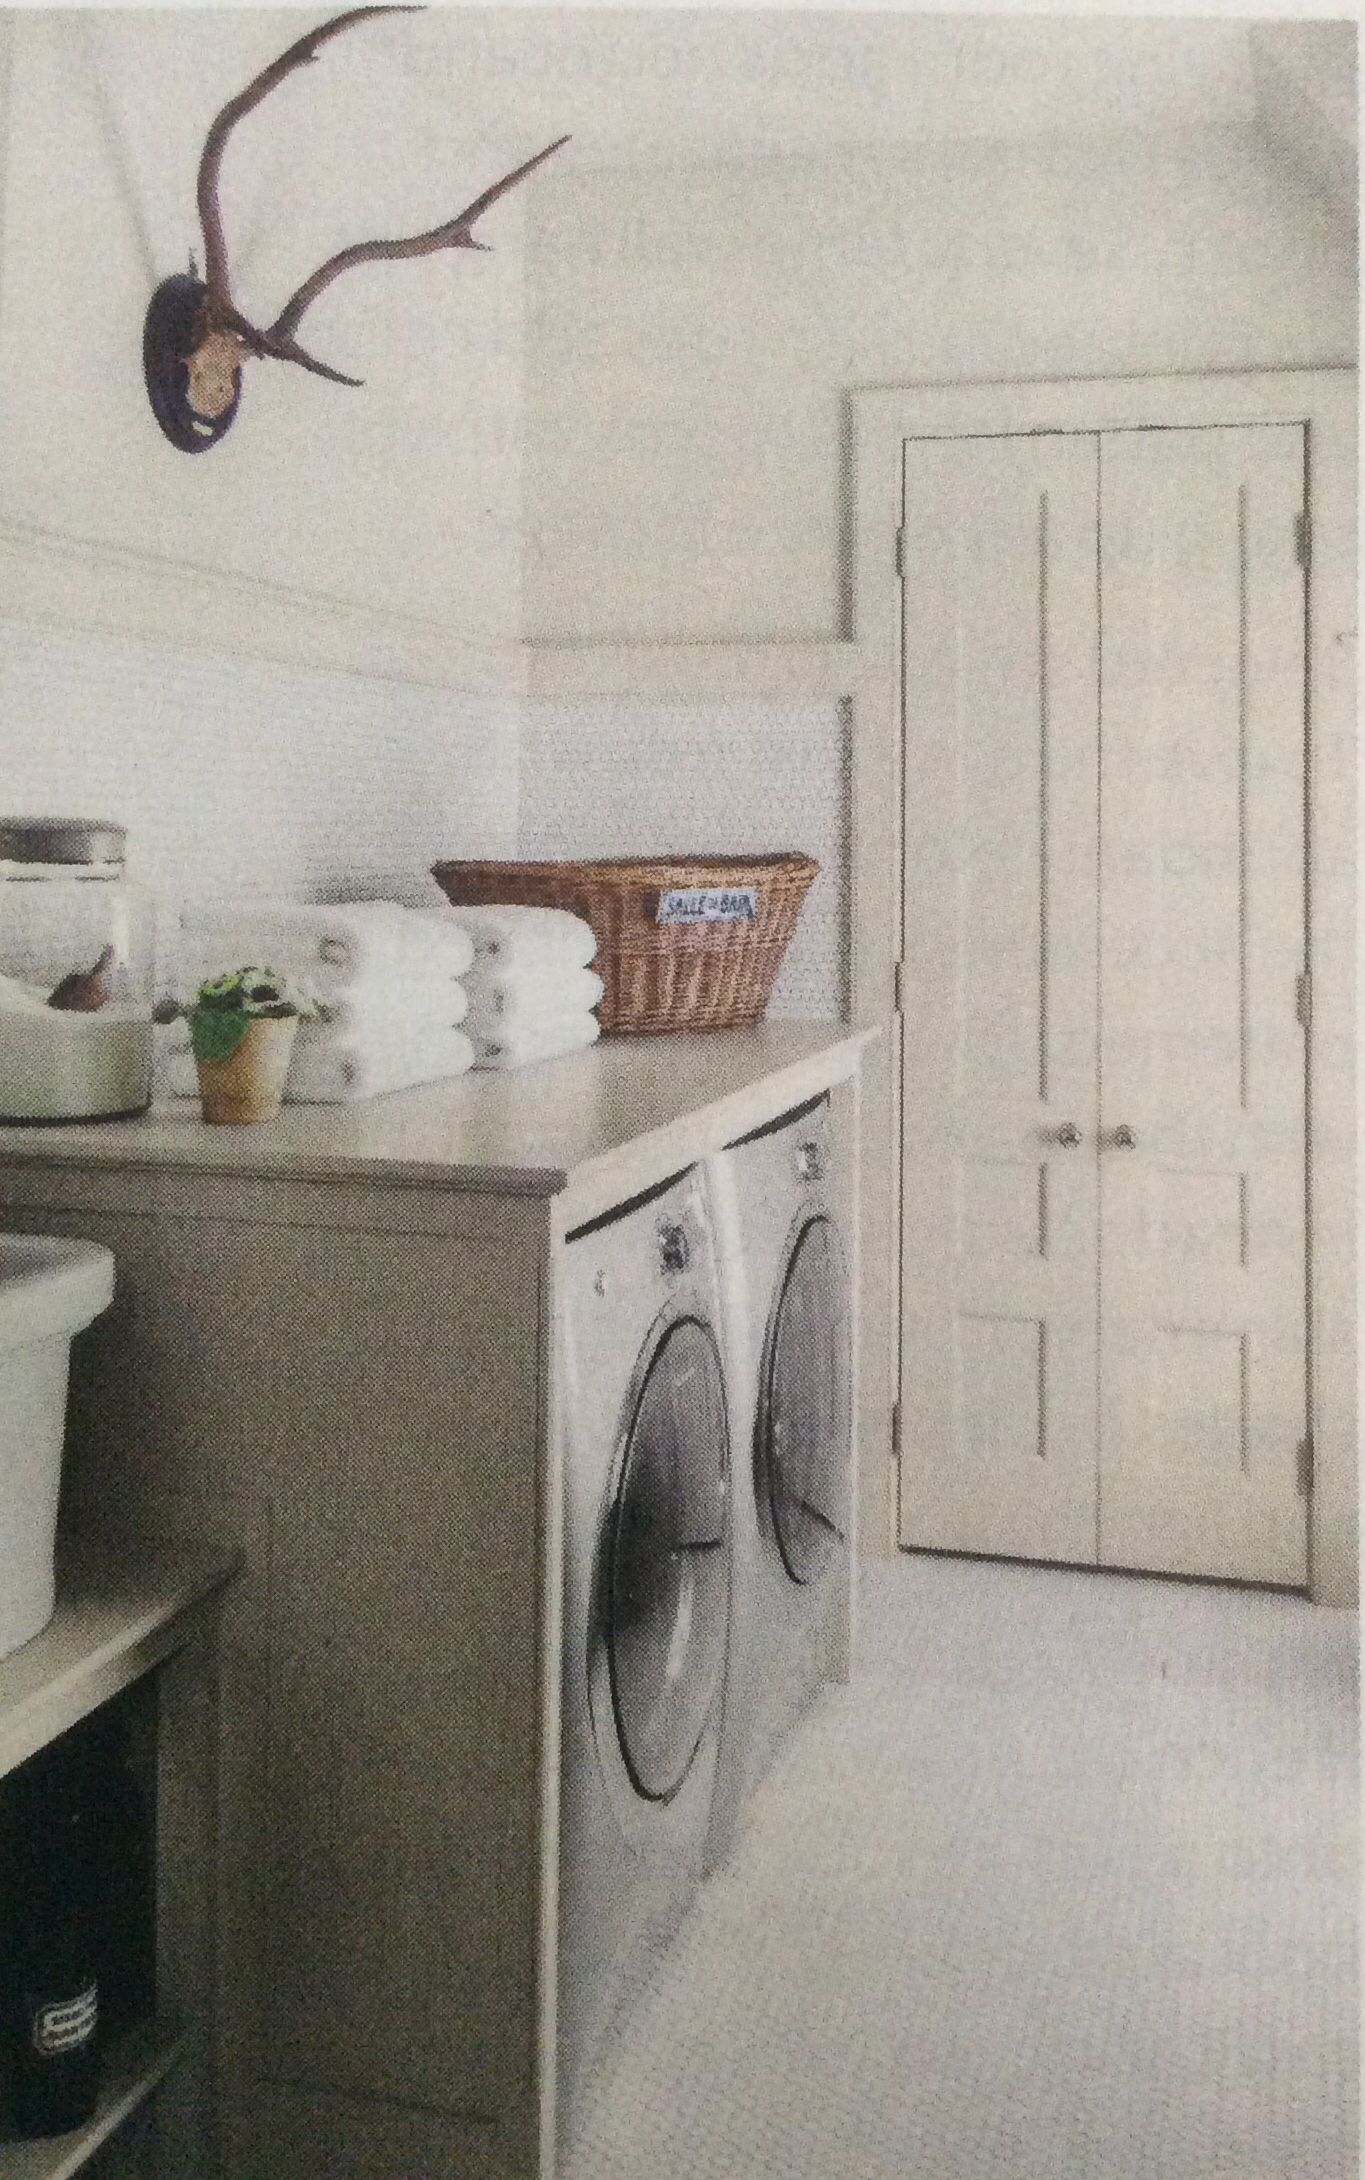 Laundry room Jeannette Whitson via Southern Living